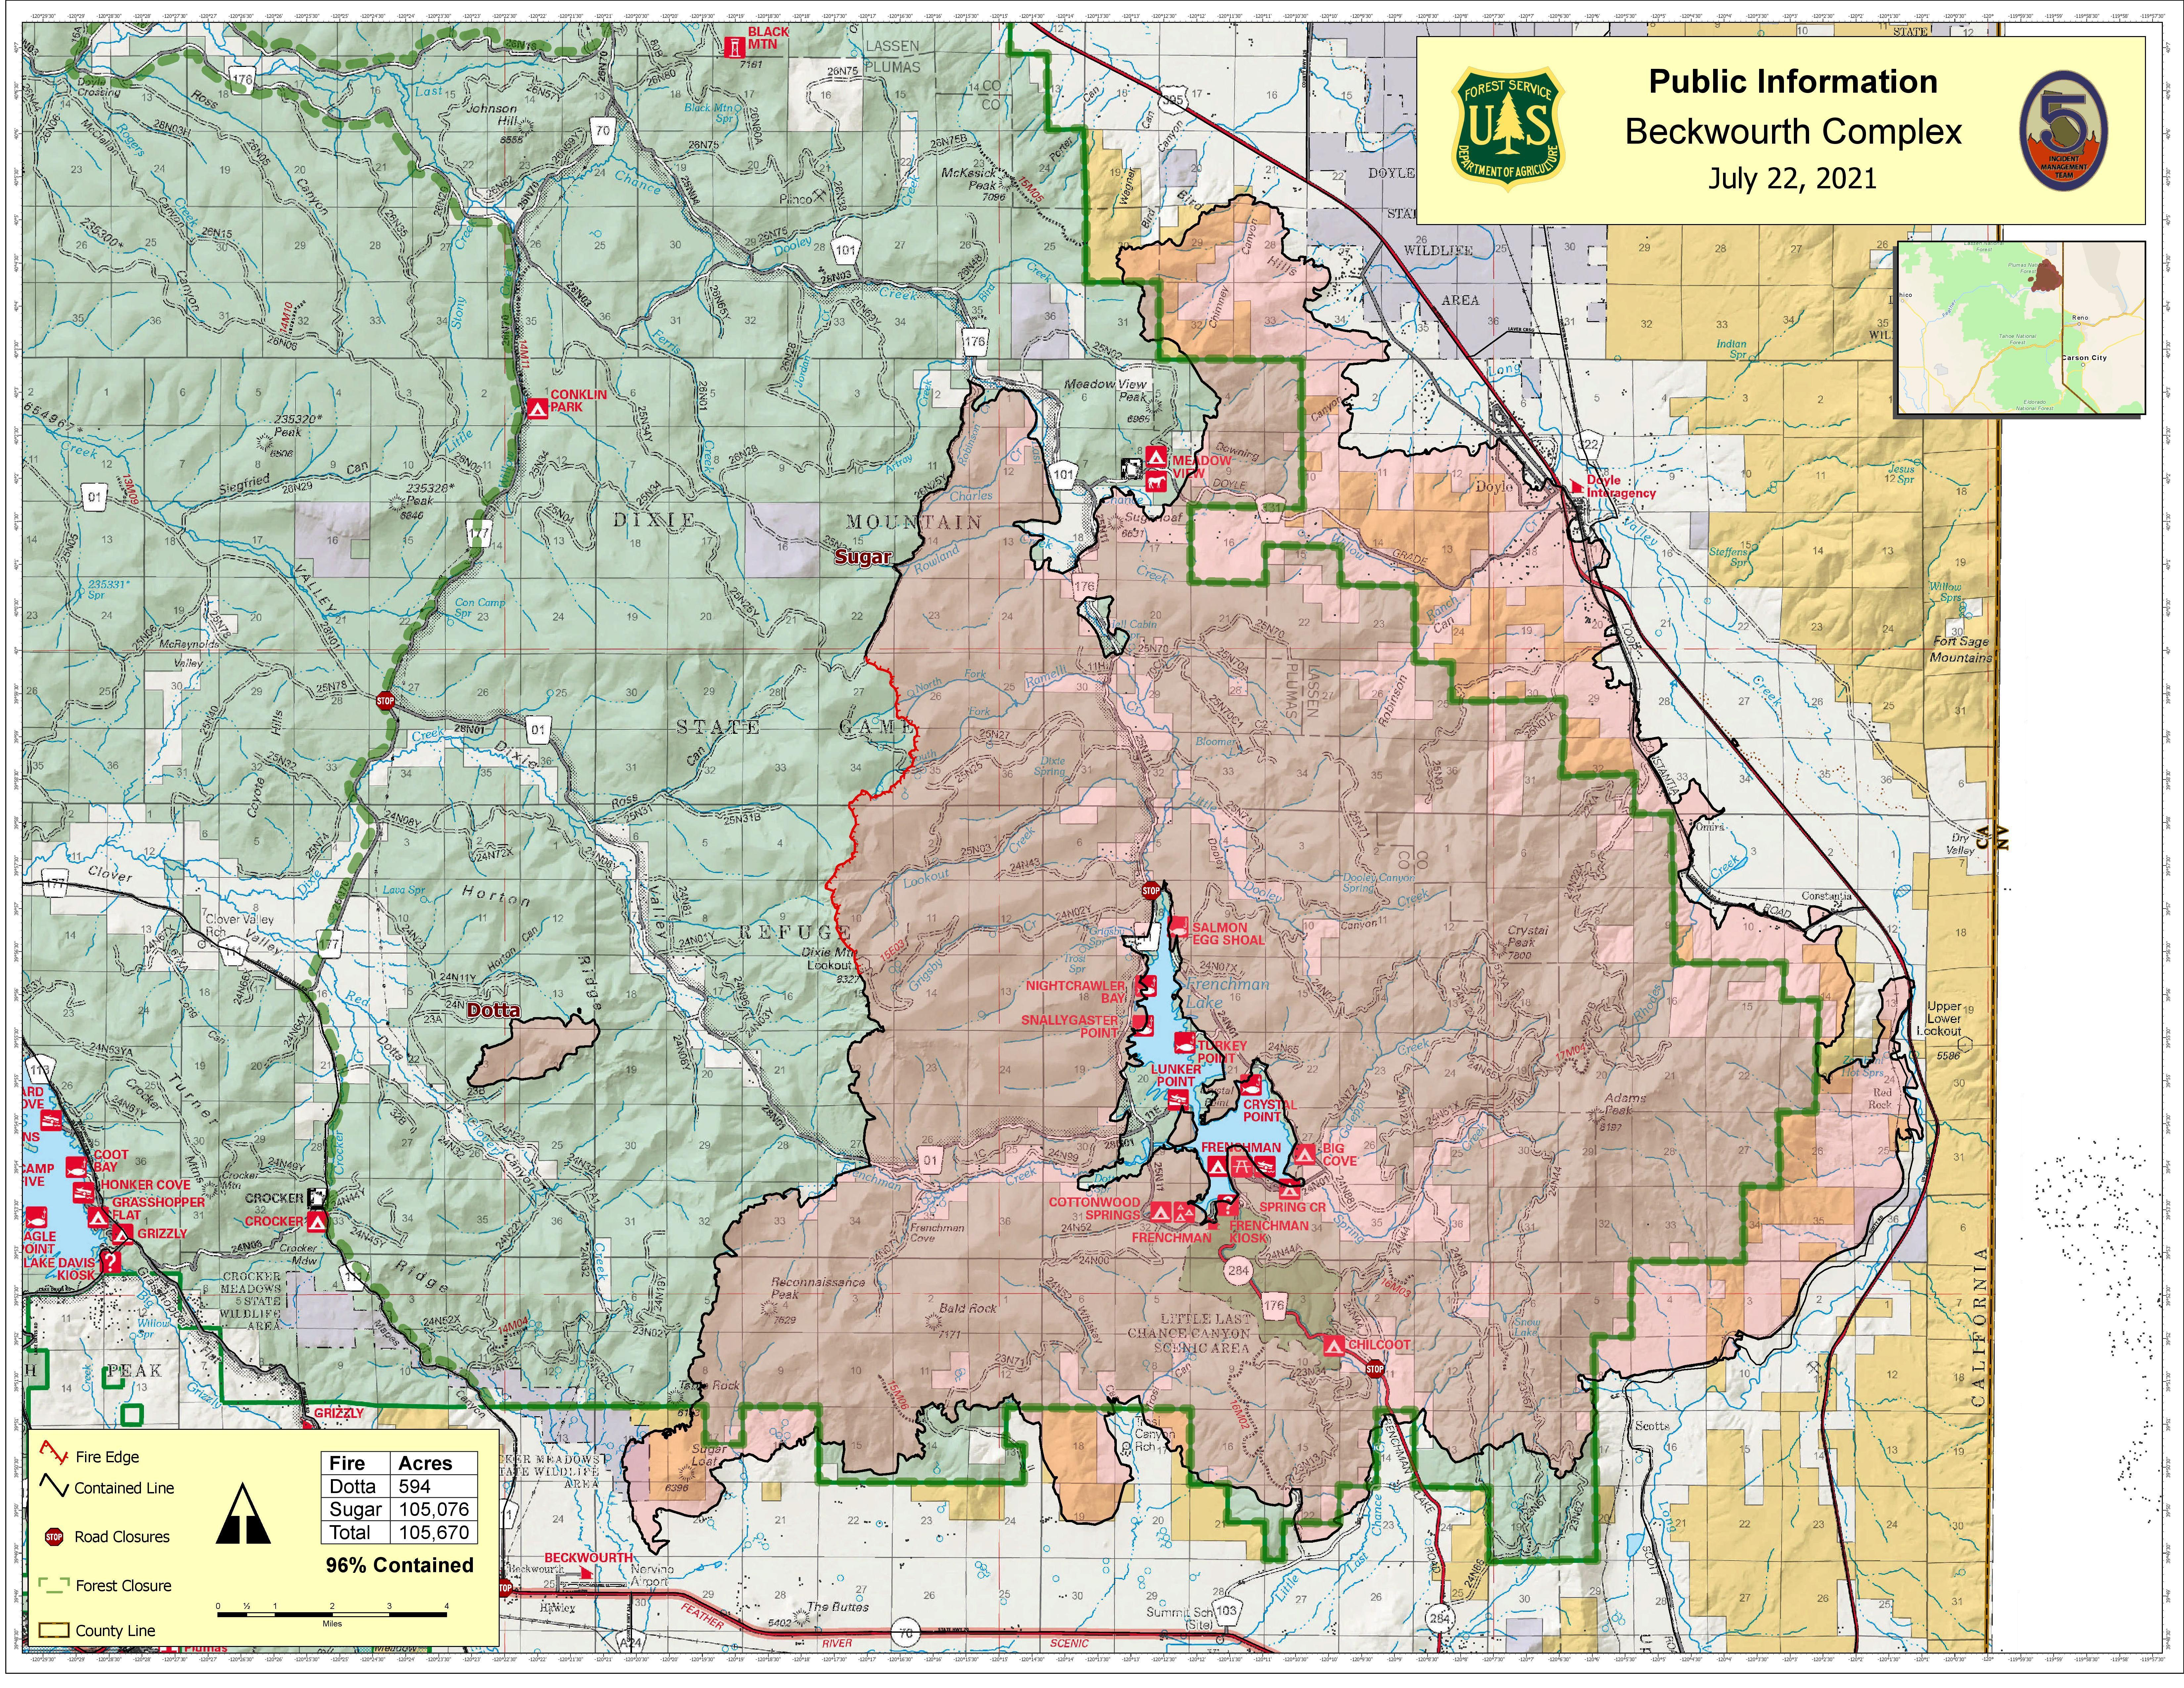 This Map show the fire perimeter of the Beckwourth Complex as of July 22, 2021